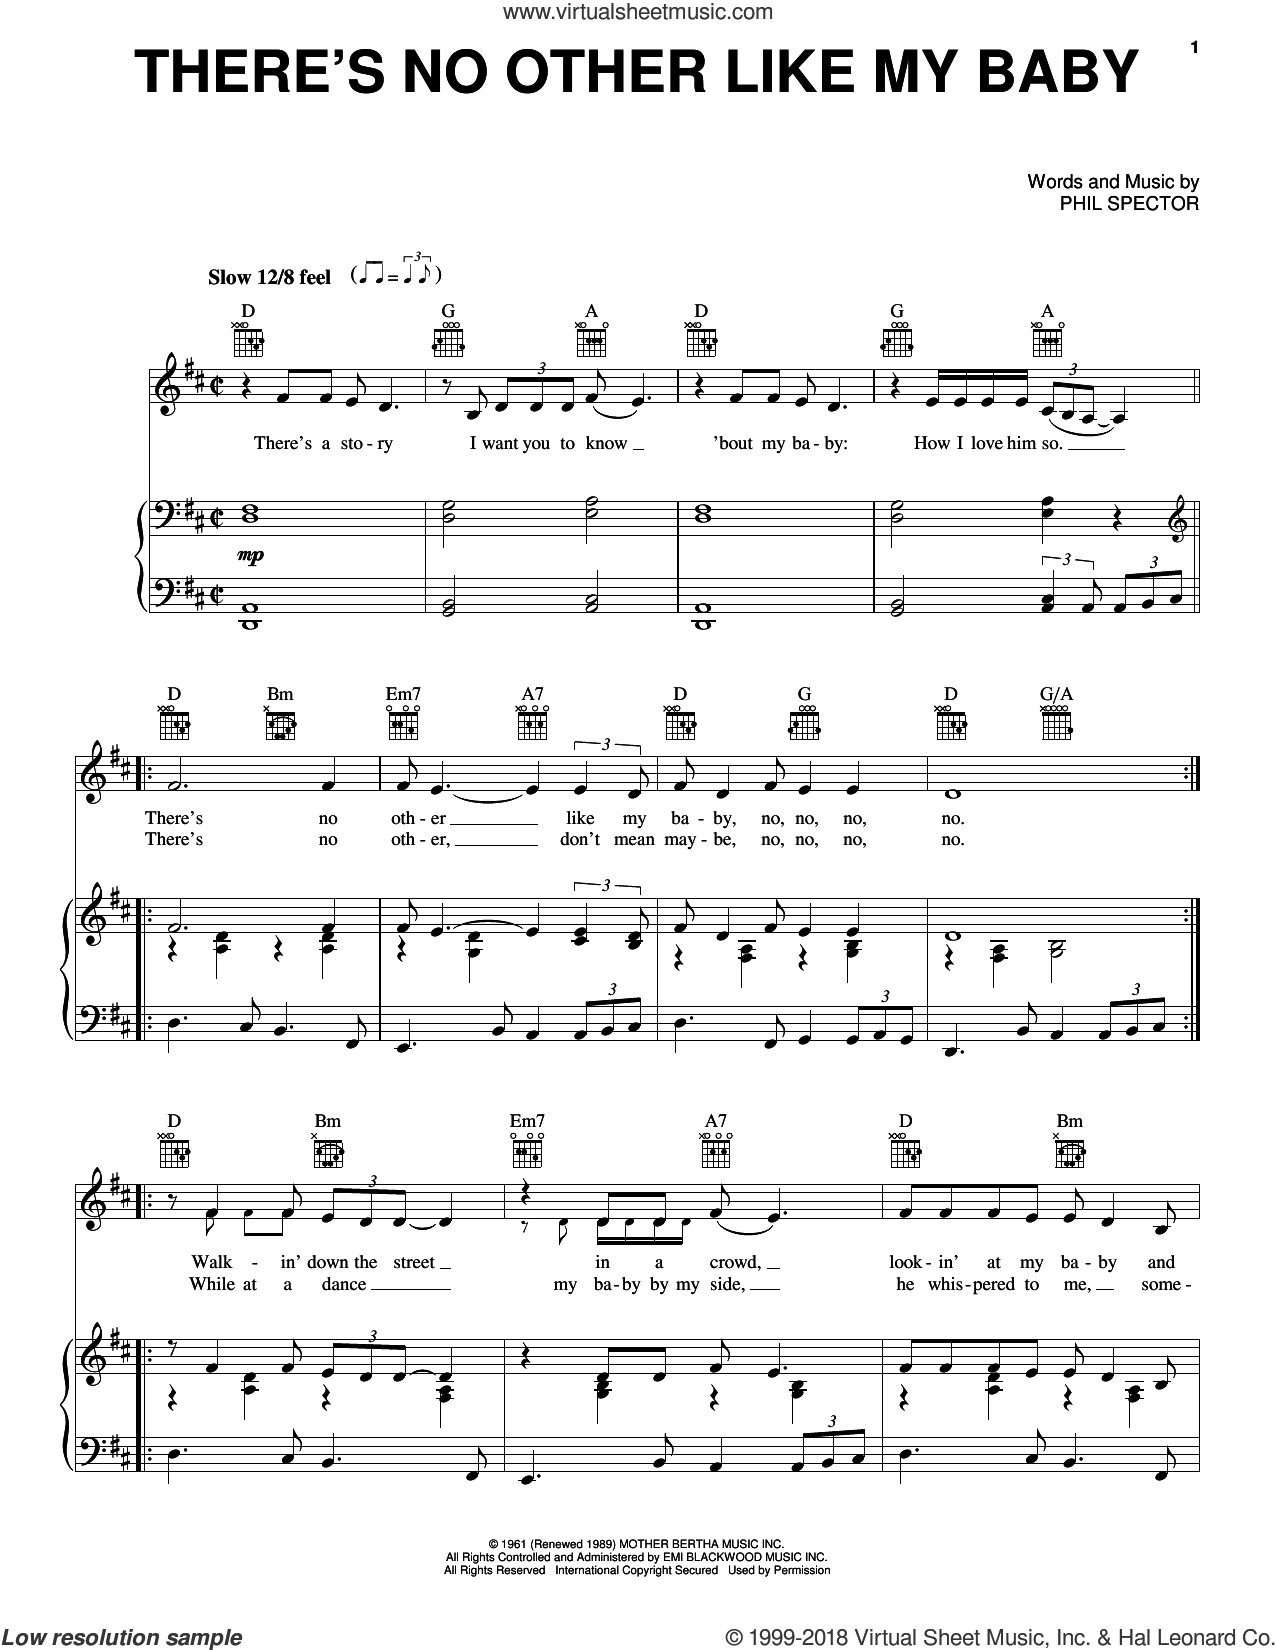 There's No Other Like My Baby sheet music for voice, piano or guitar by The Crystals, Leroy Bates and Phil Spector, intermediate skill level